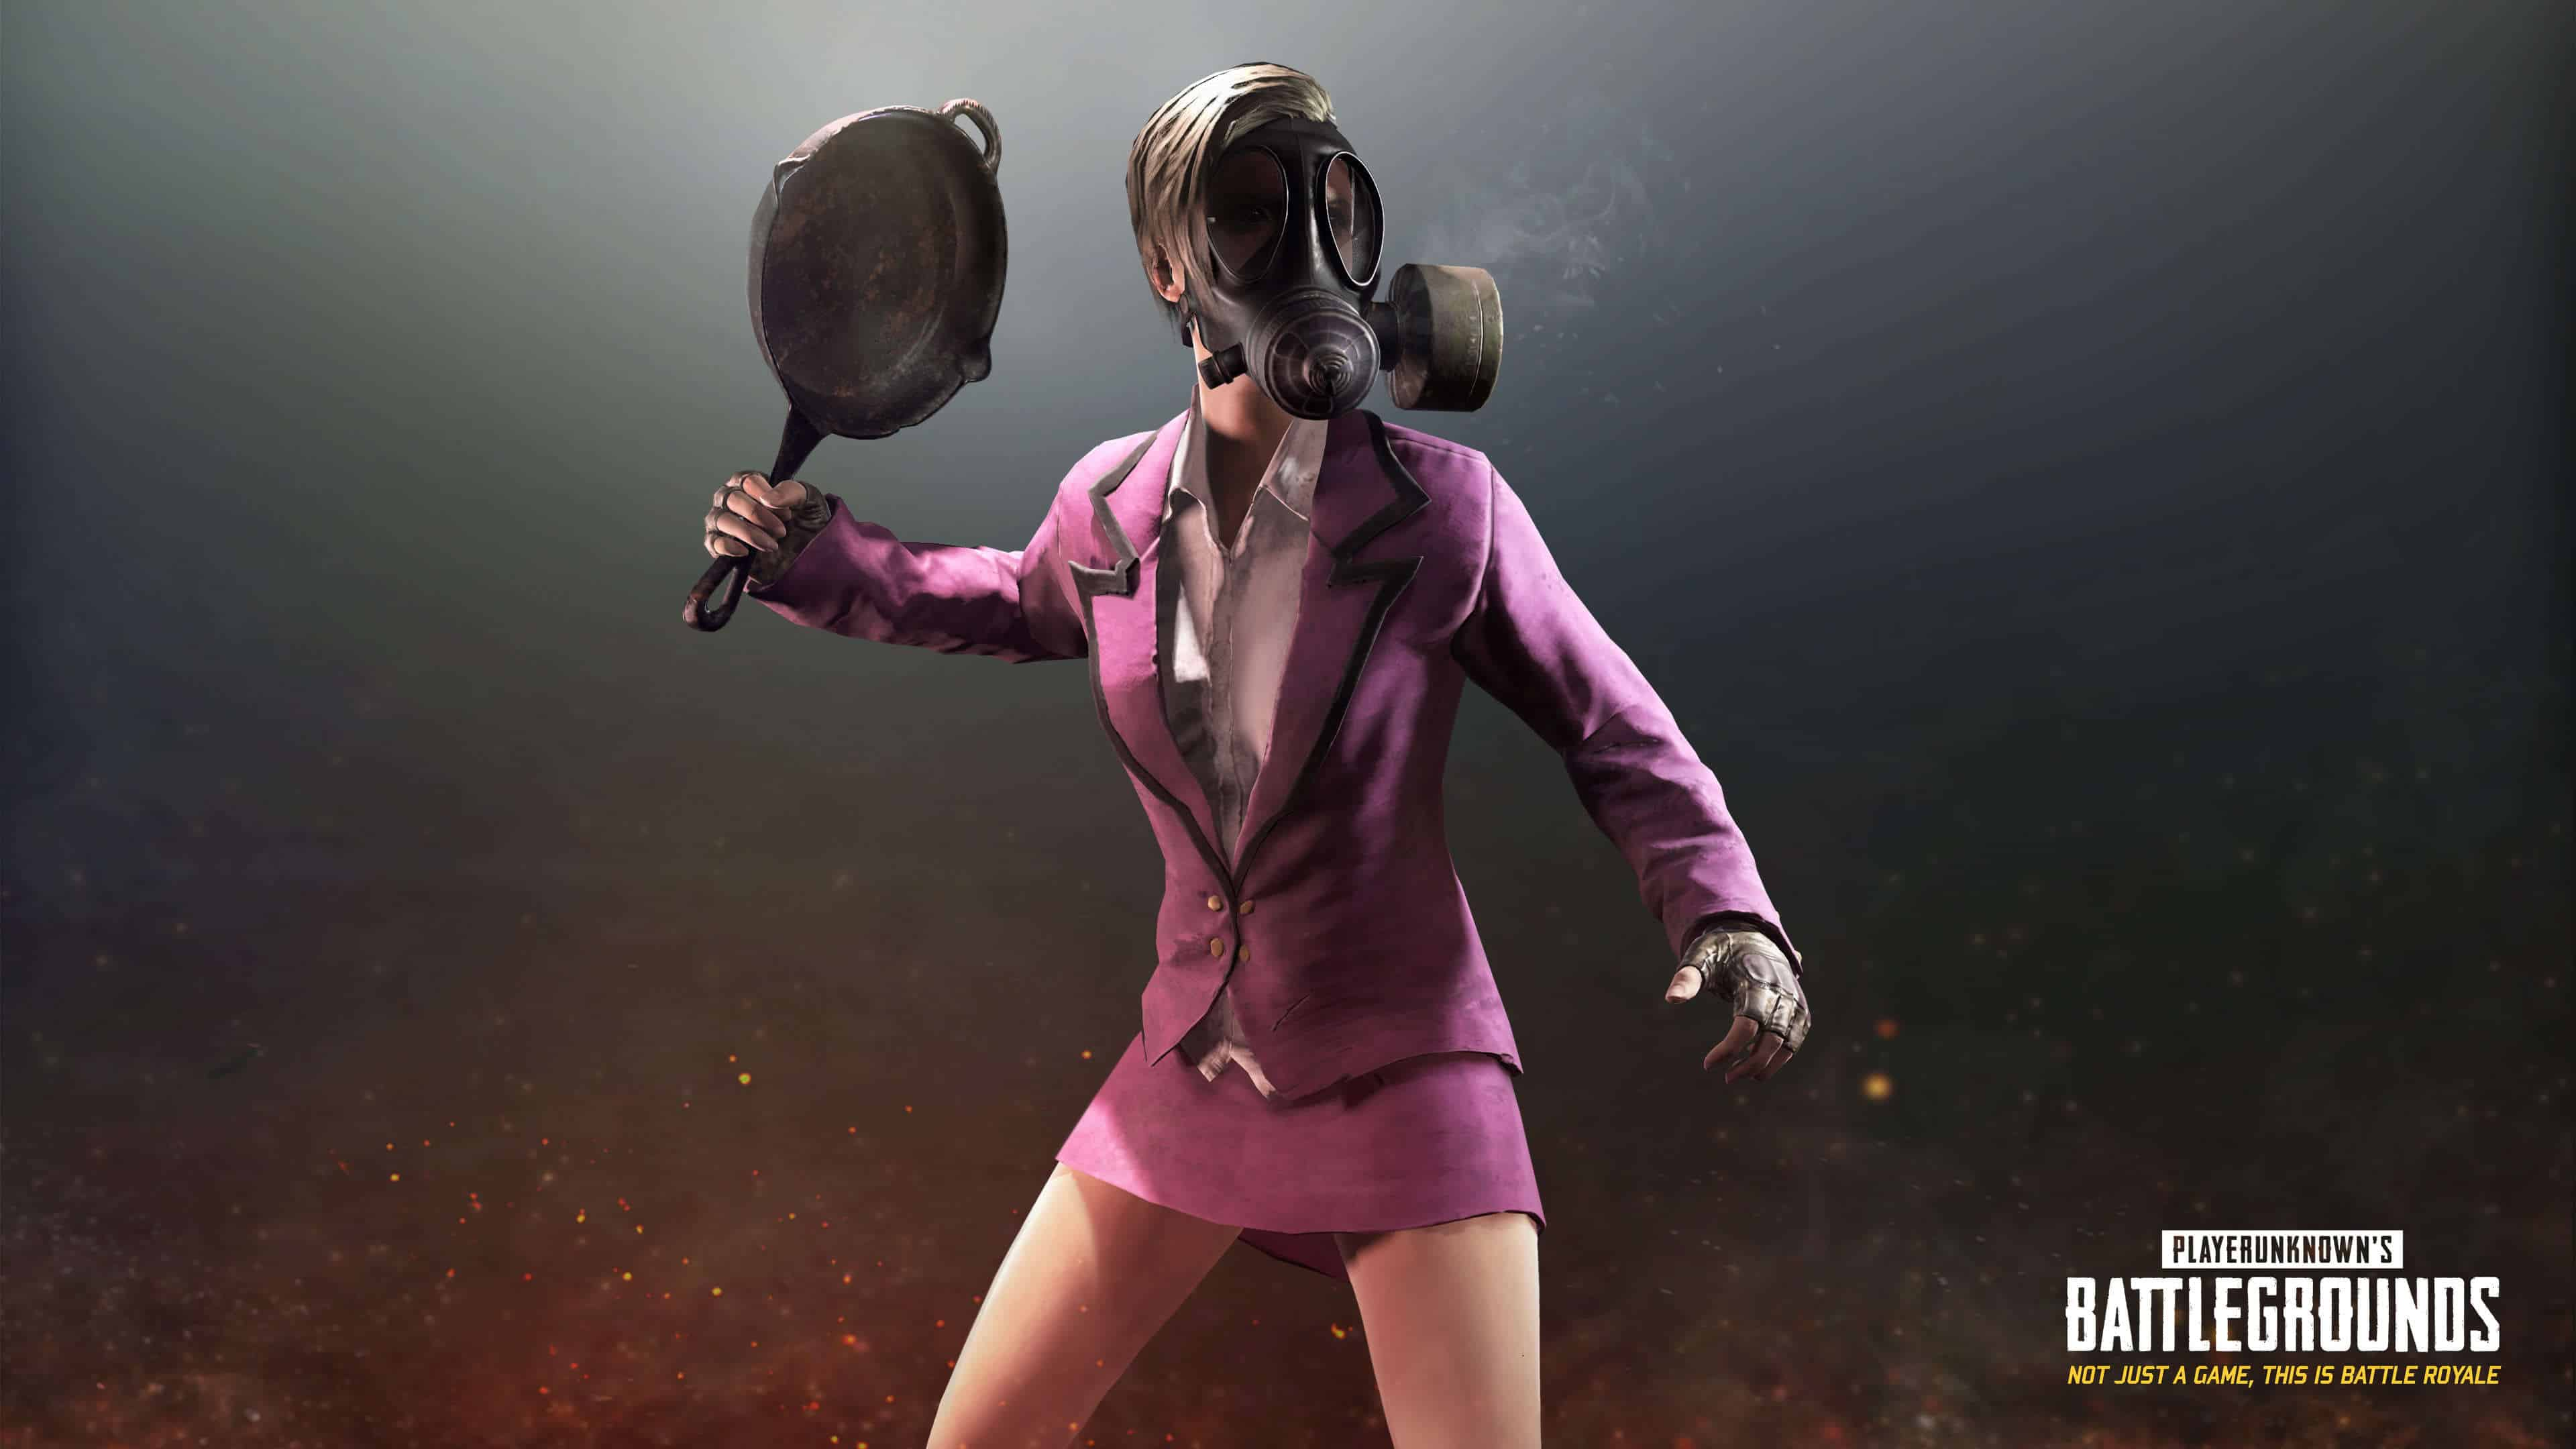 PUBG Pink Skirt Tuxedo And Gas Mask UHD 4K Wallpapers